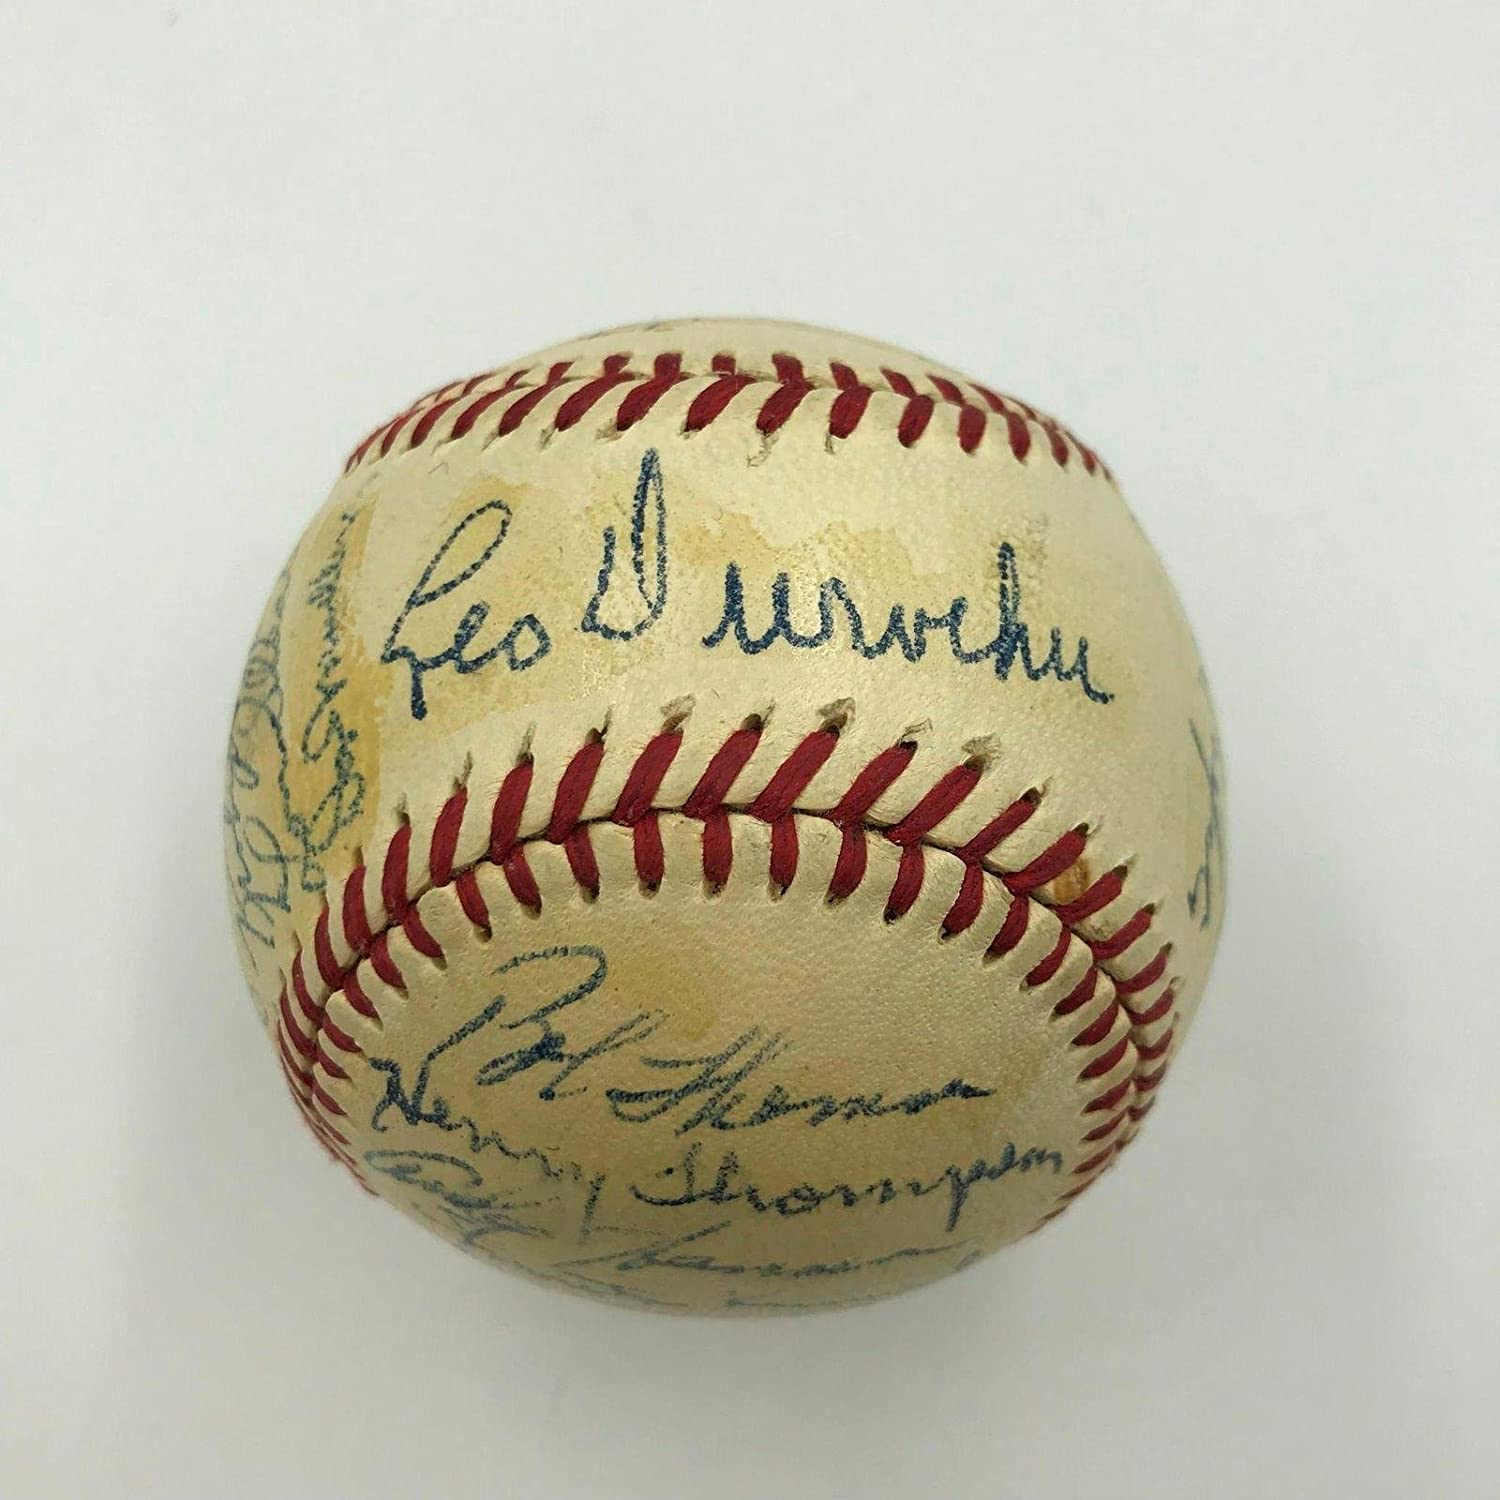 Nice 1950 New York Giants Team Signed National League Baseball With JSA COA - NFL Autographed Miscellaneous Items